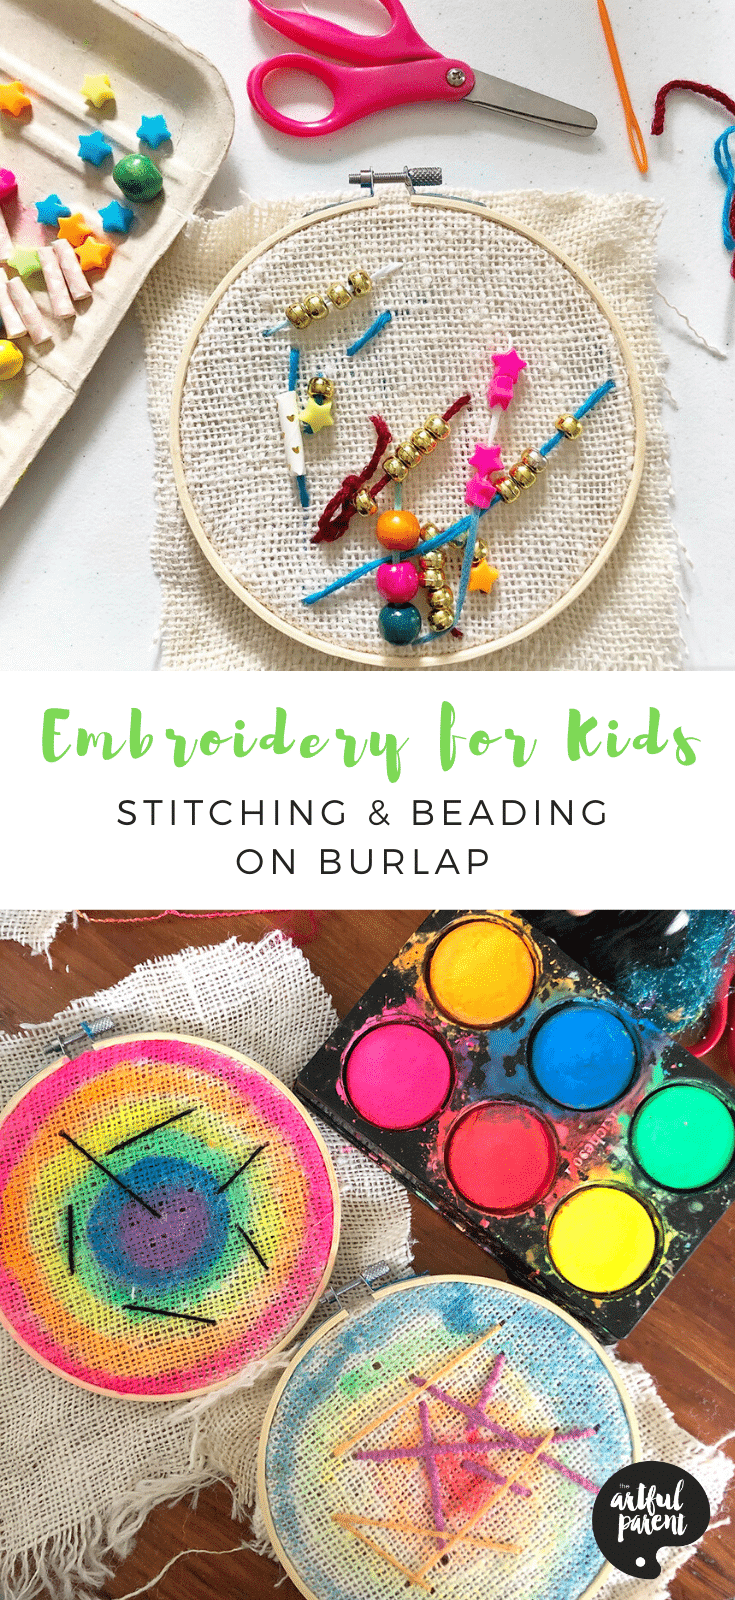 Embroidery-for-Kids_-Stitching-Beading-on-Burlap-_-Pinterest